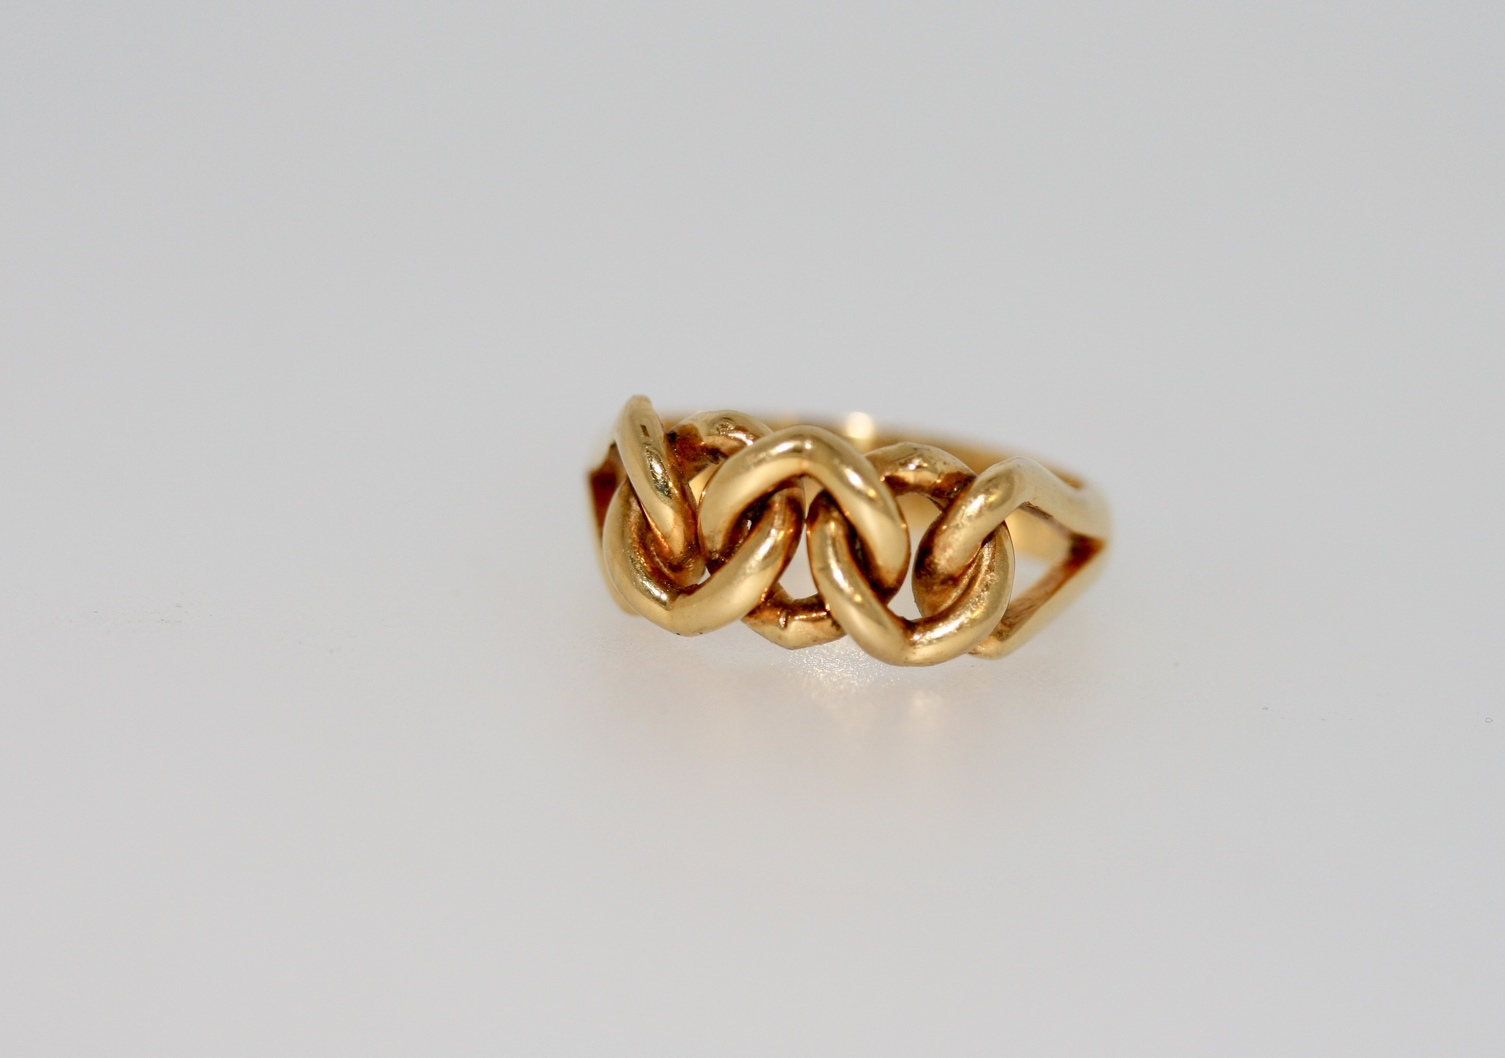 18ct Yellow Gold Knot Ring, Chester 1911